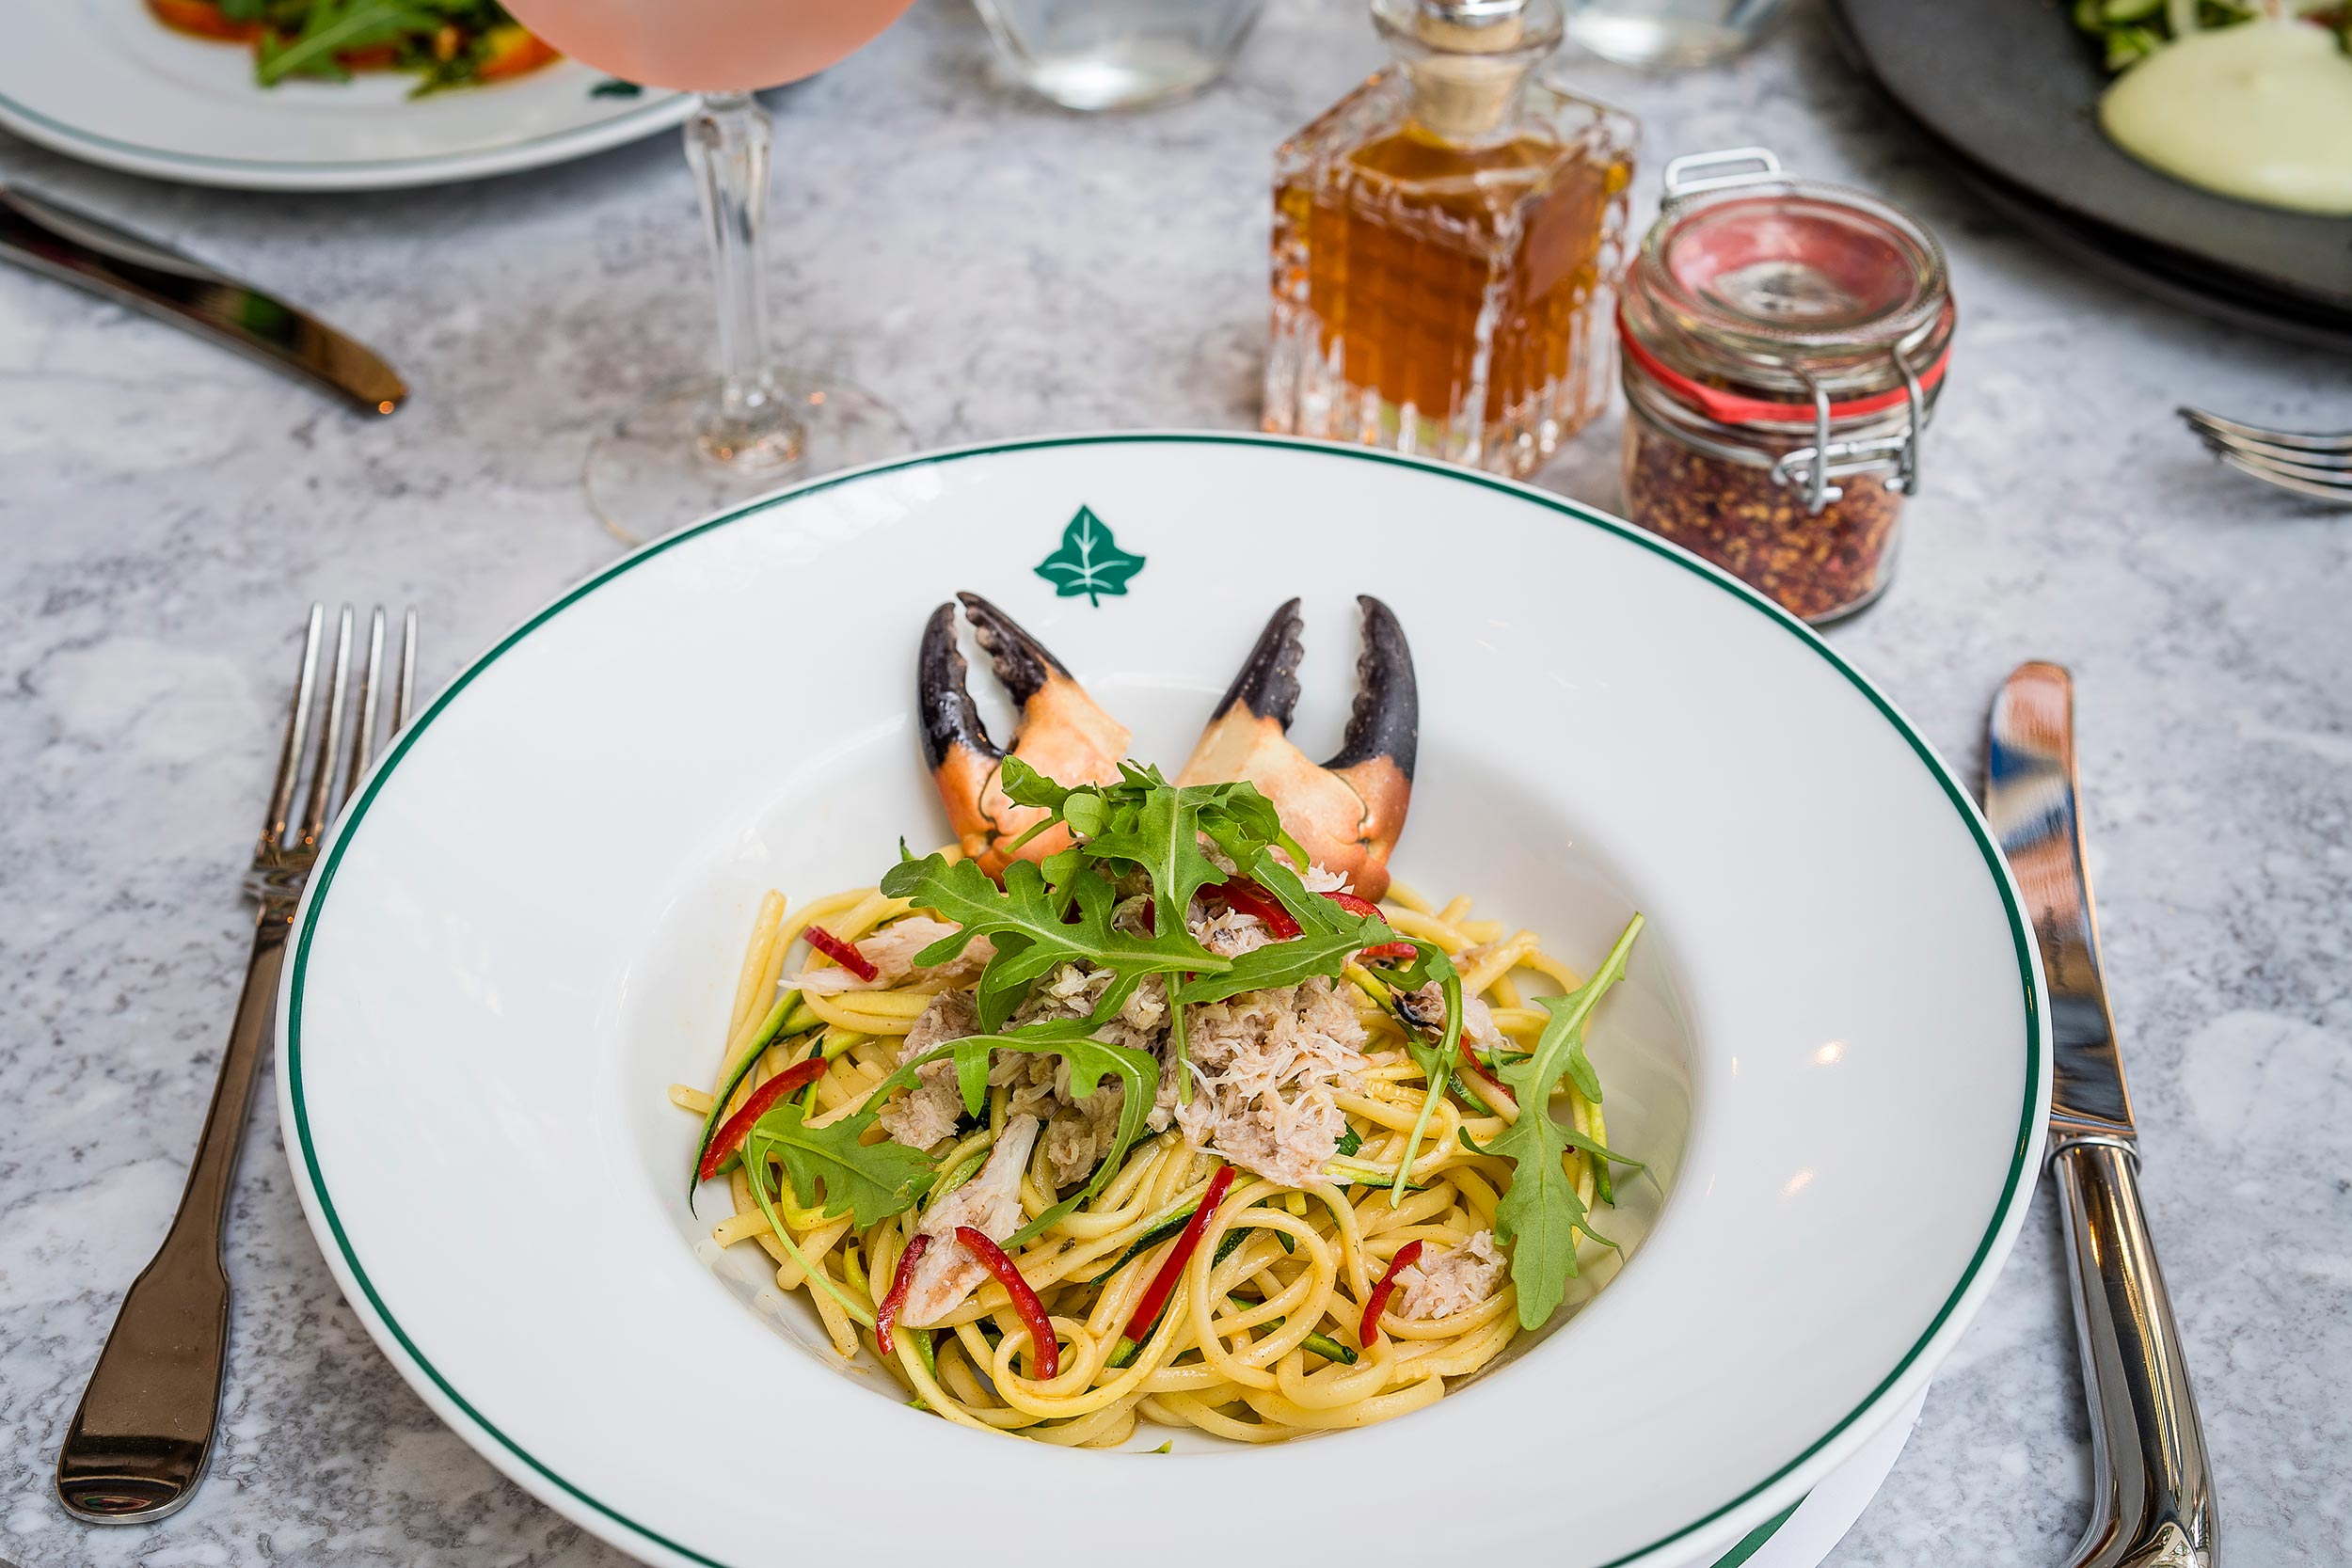 Crab linguine at The Ivy City Garden - The Ivy City Garden